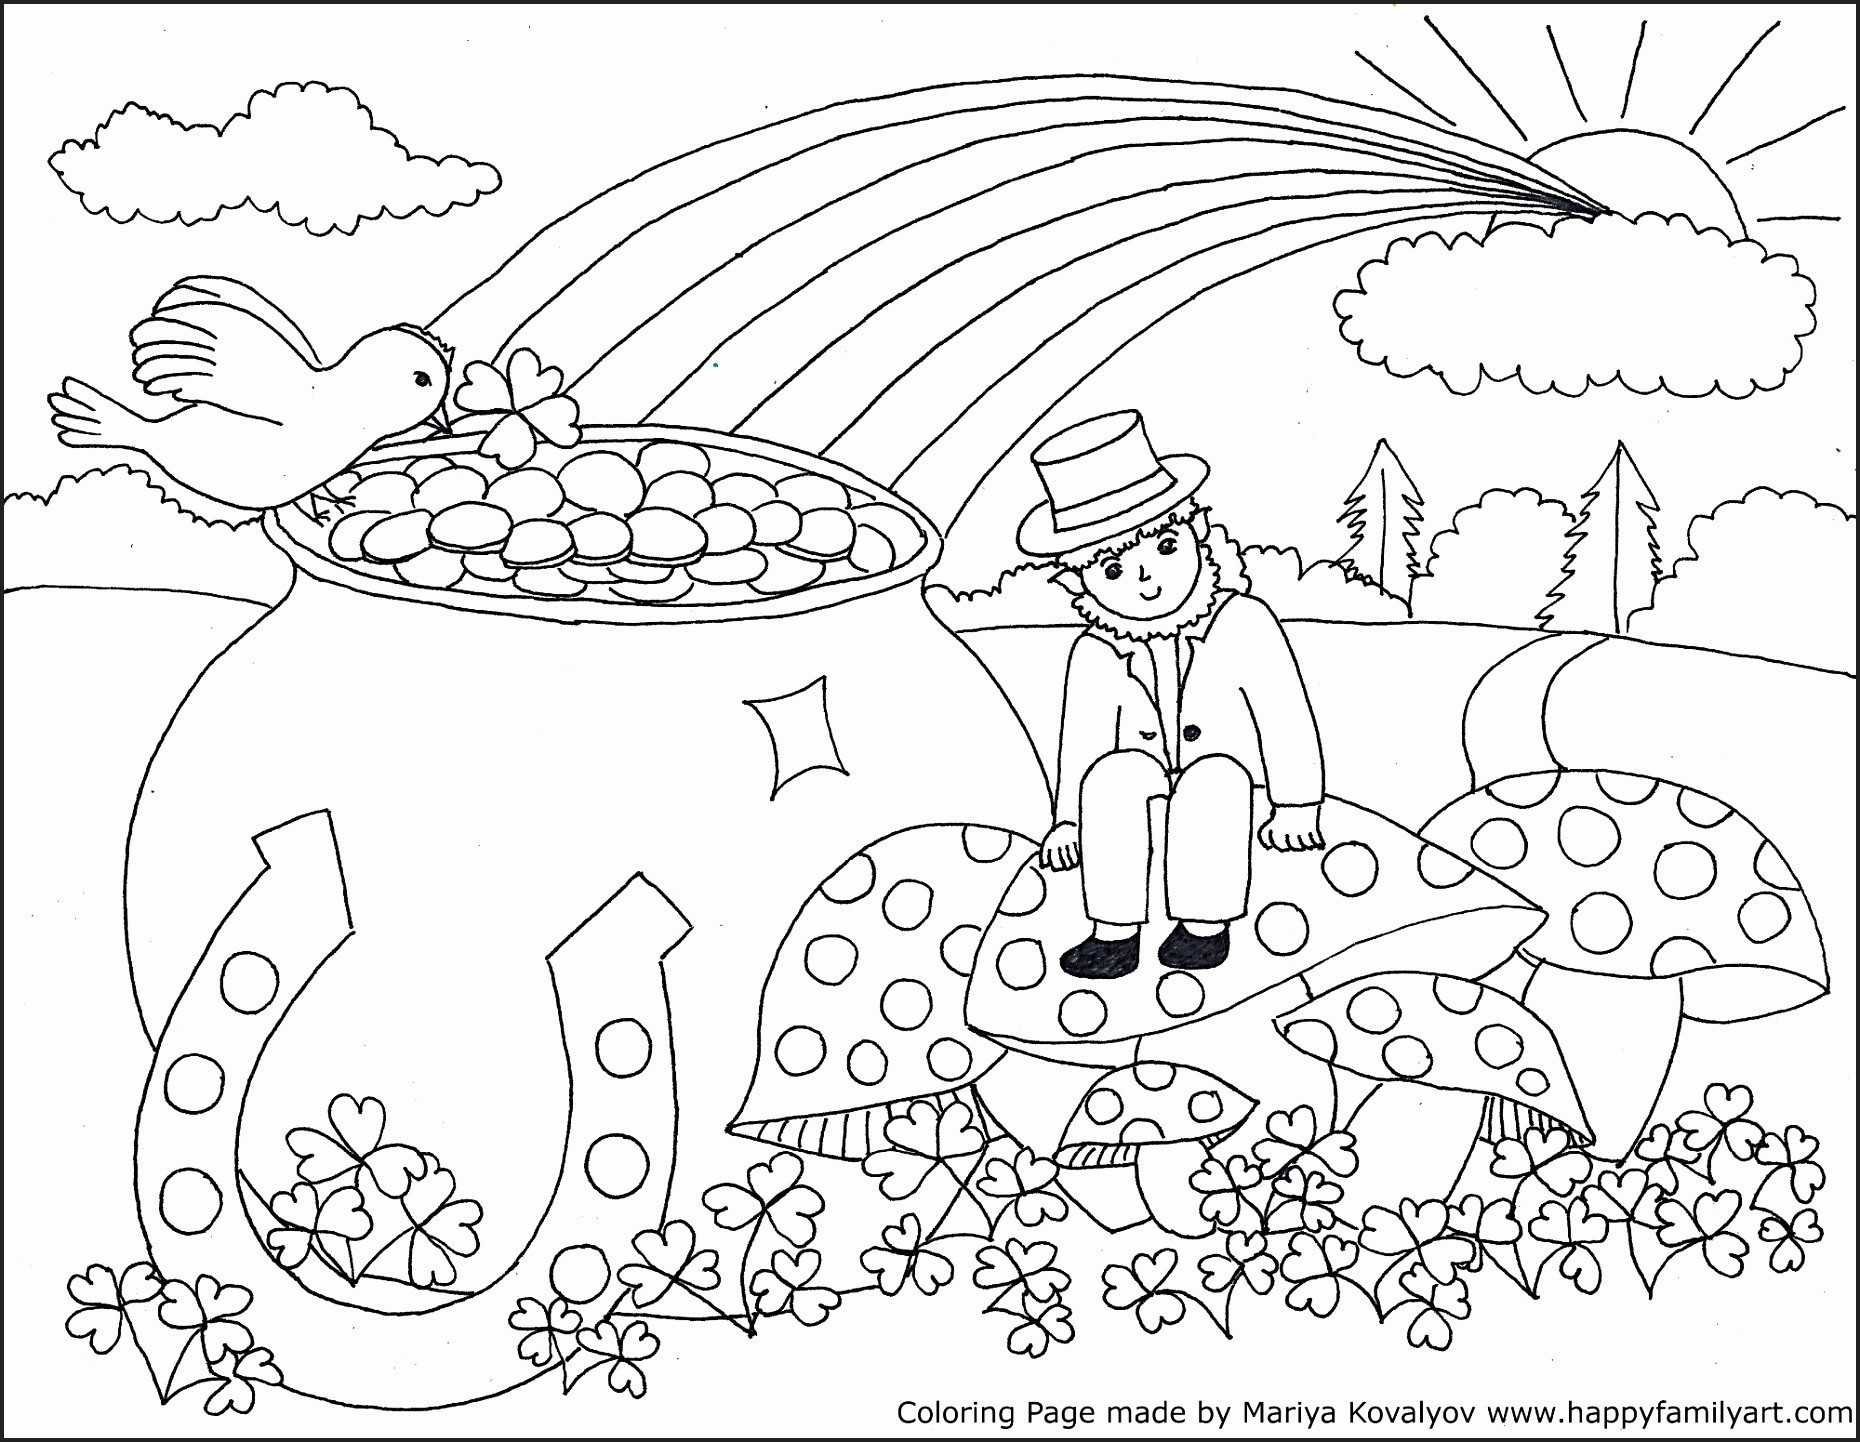 Coloring Pages : St Patricks Dayng Pages For Kids With Medquit Free - Free Printable St Patrick Day Coloring Pages